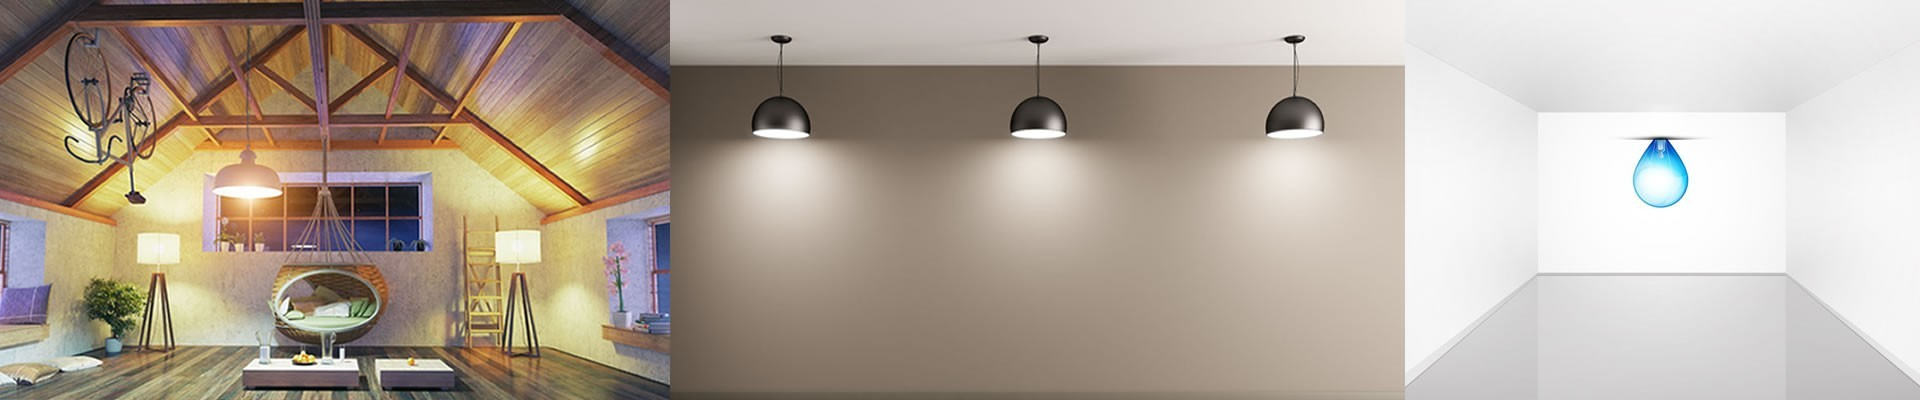 Lighting | Ceiling Lights, Wall Lights, Bathroom & Kitchen Lighting